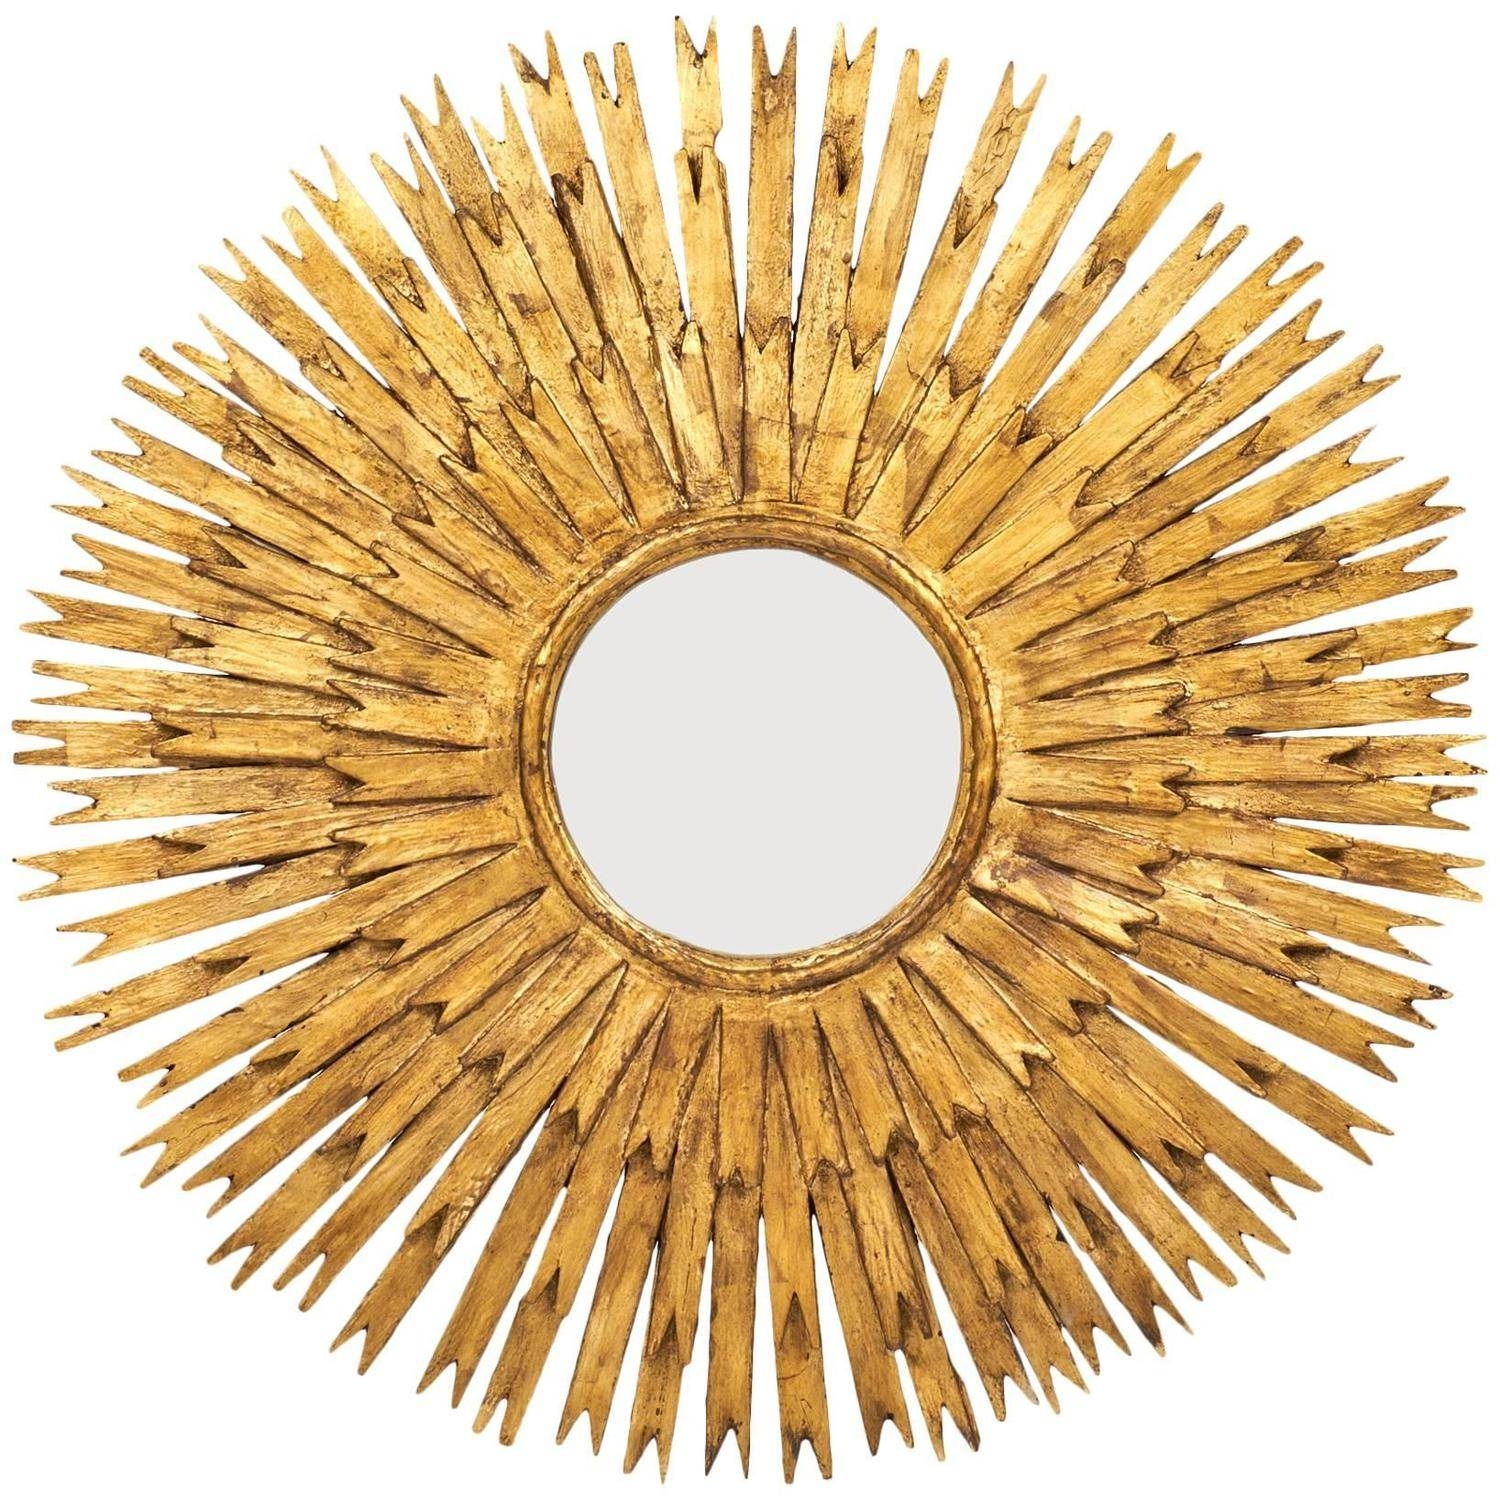 Vintage Large Gold Leaf Sunburst Mirror - Jean Marc Fray within Large Sunburst Mirrors (Image 25 of 25)